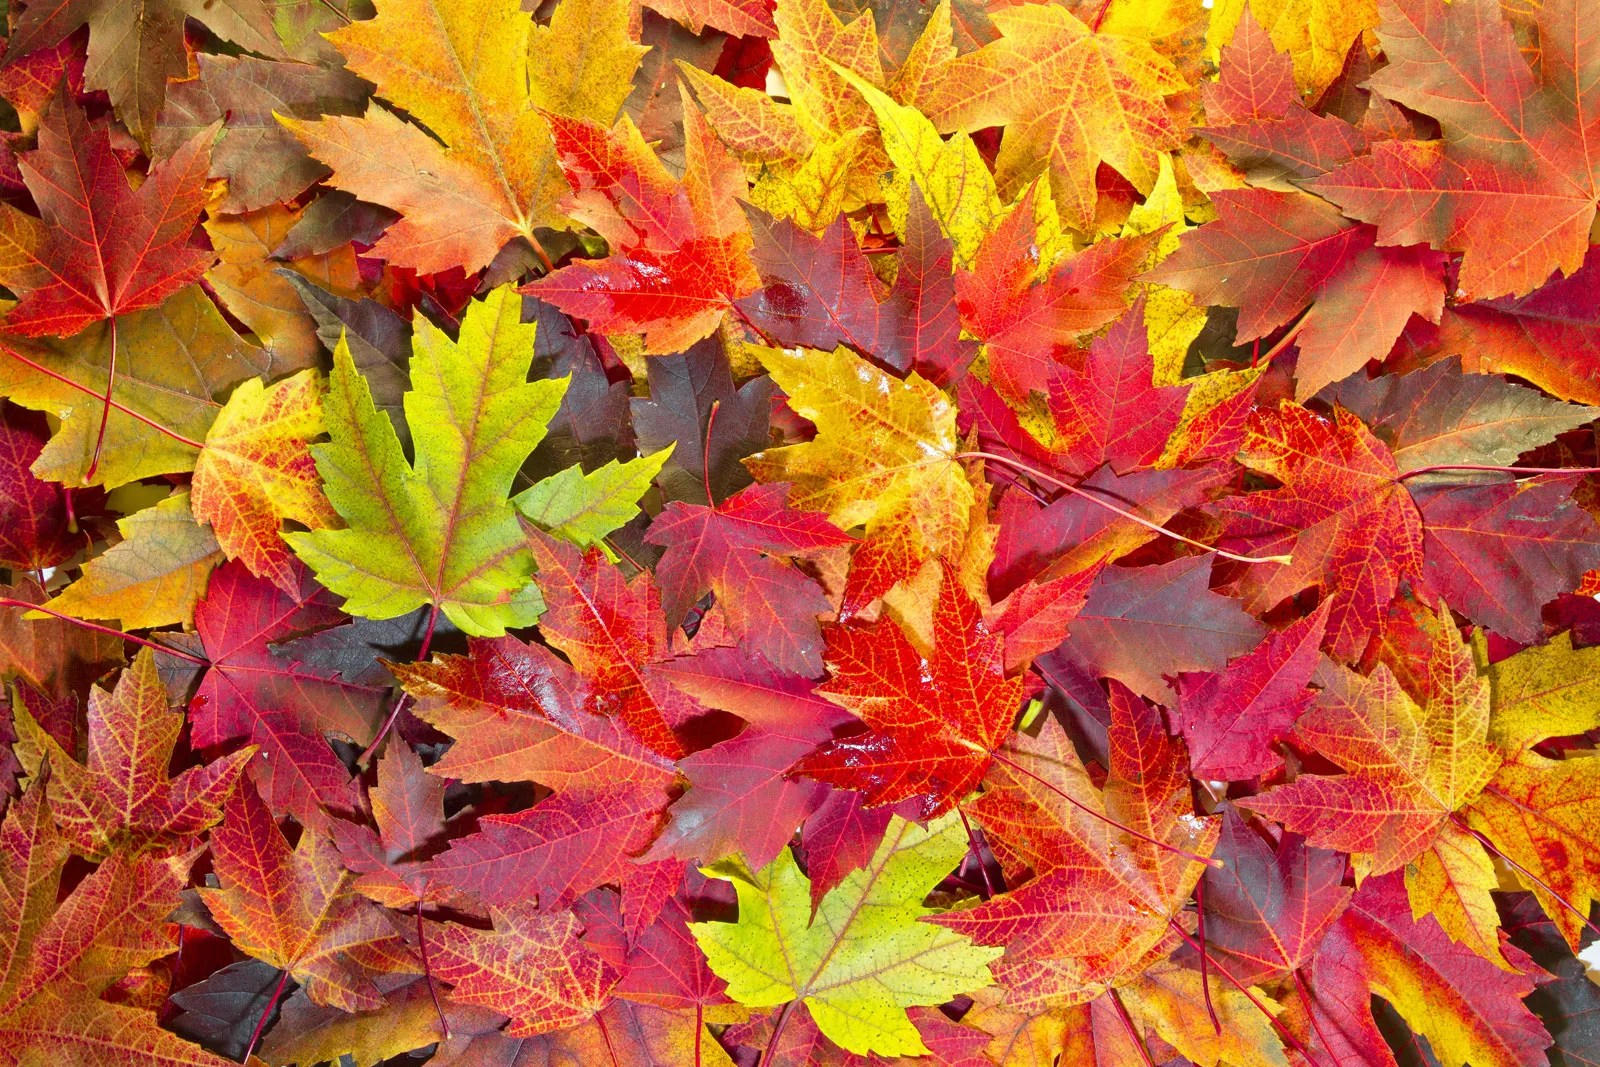 Why Do Leaves Change Colors In The Fall